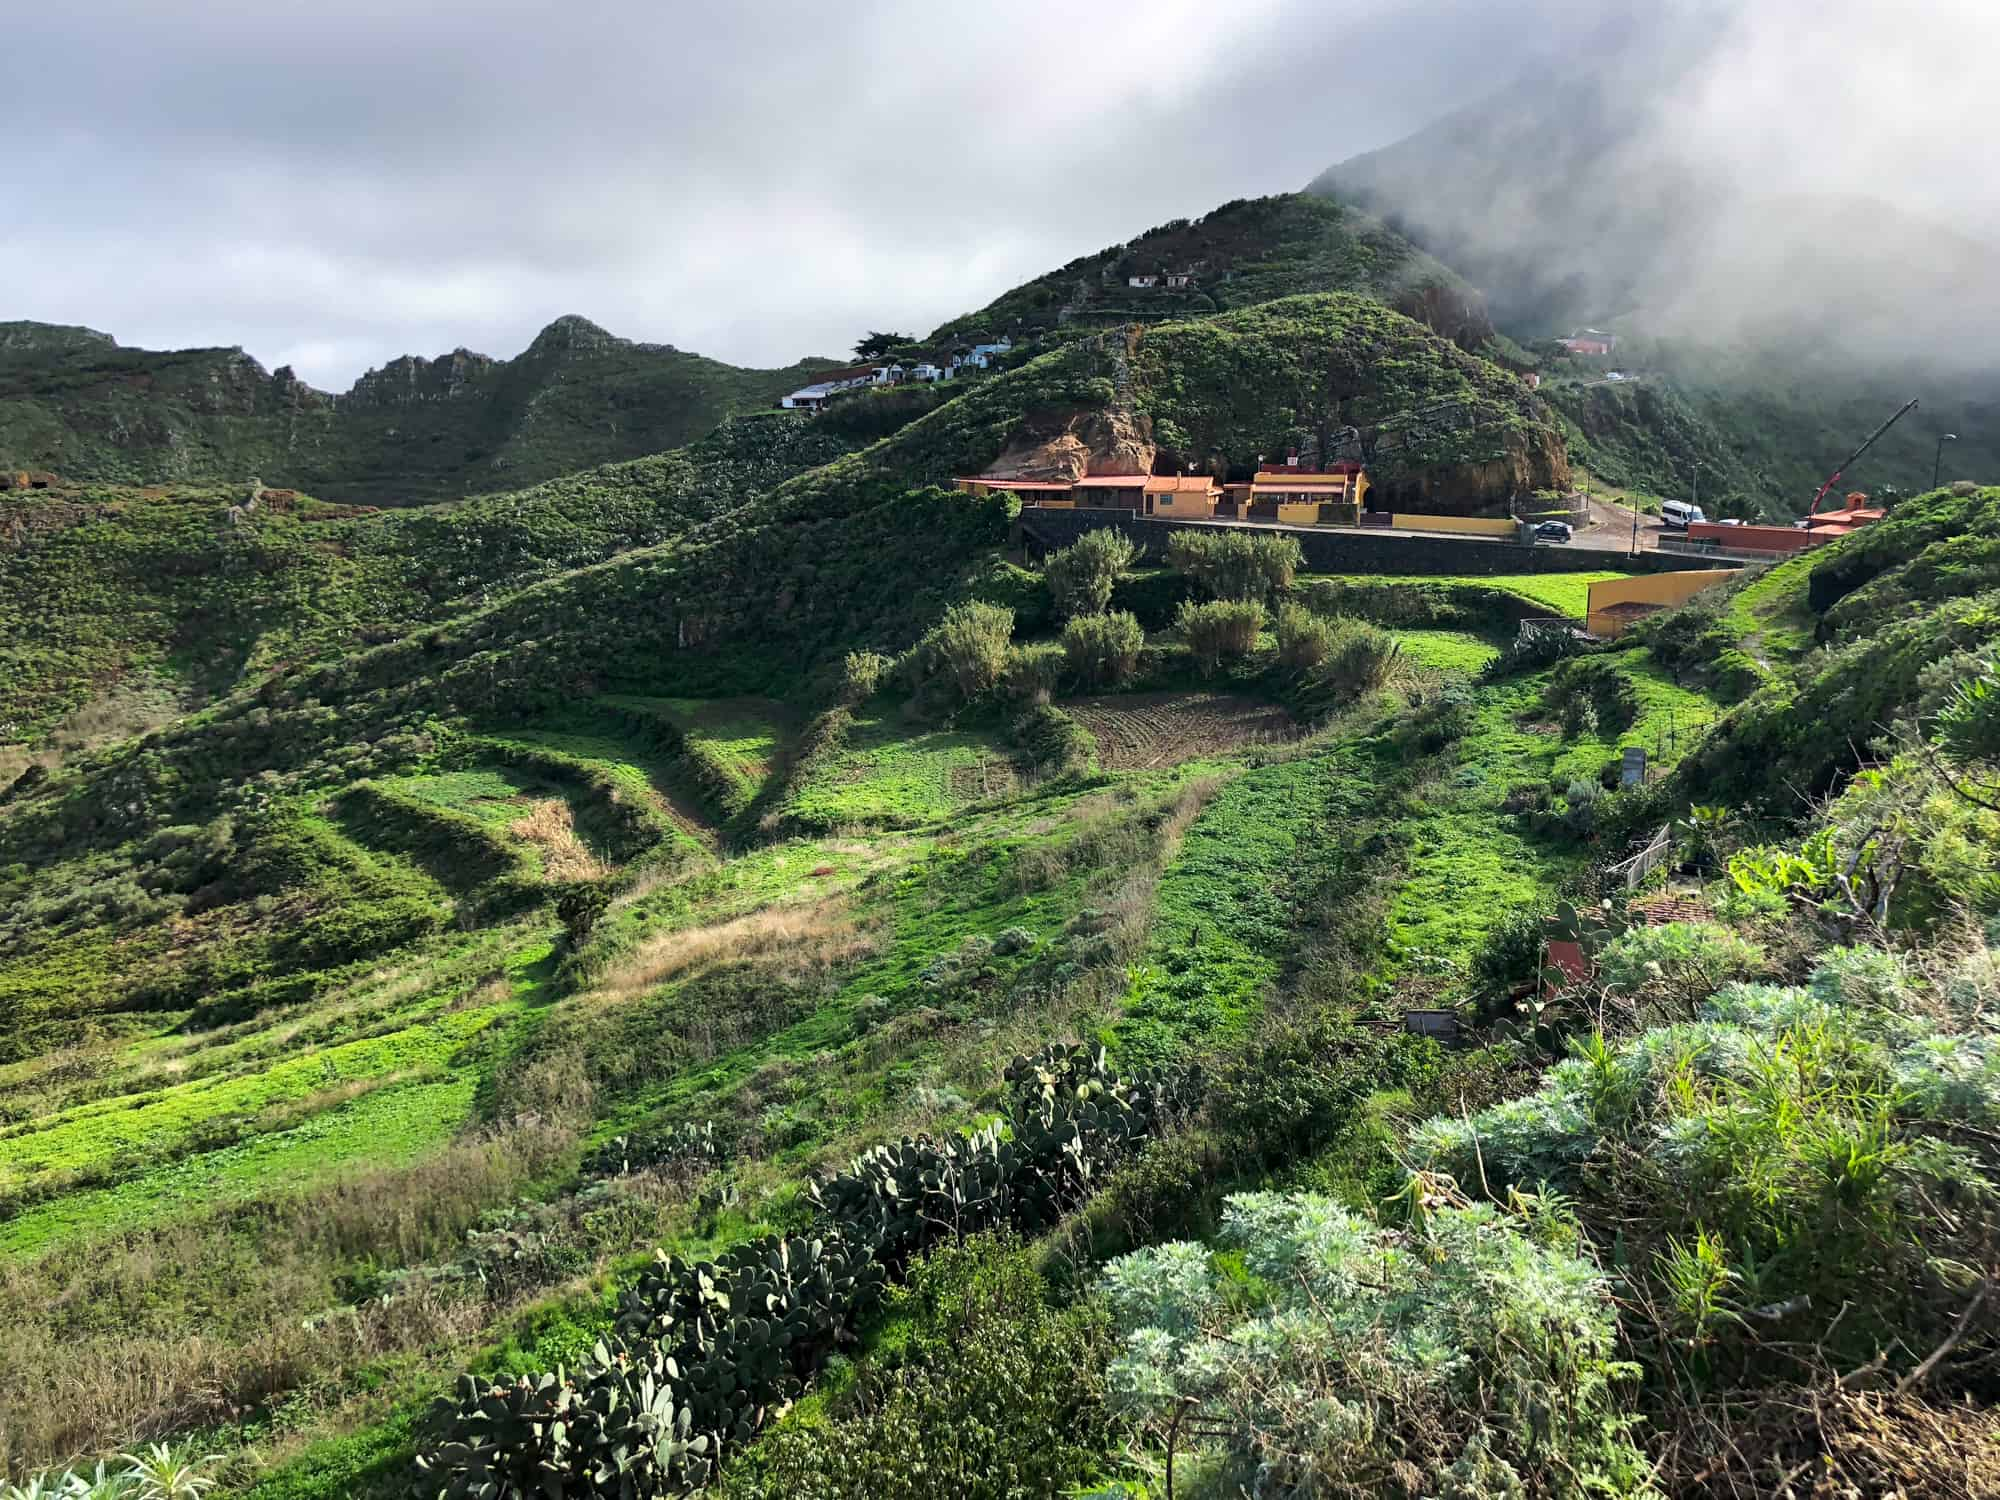 Questions about Spain - stunning hillsides in Tenerife in the Canary Islands